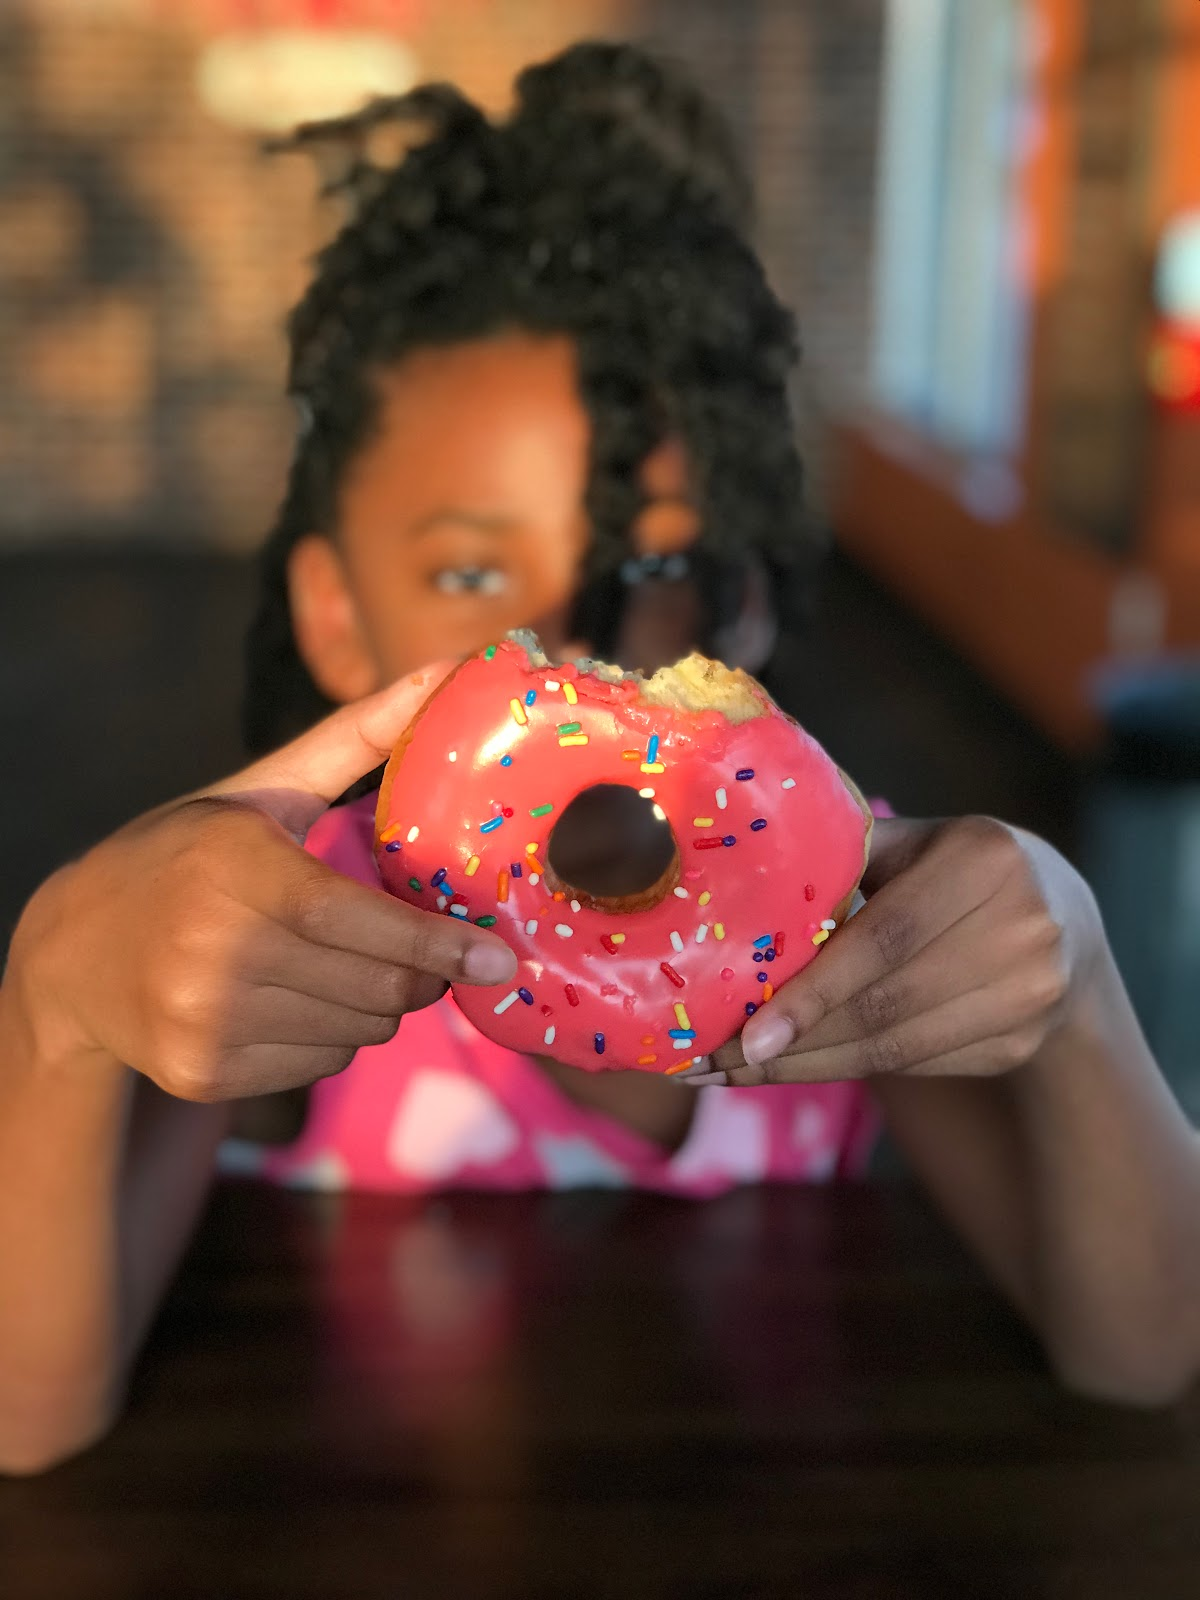 Image: Moriah holding Donut at Hurts in Frisco Texas. Seen first on Bits and Babbles Blog